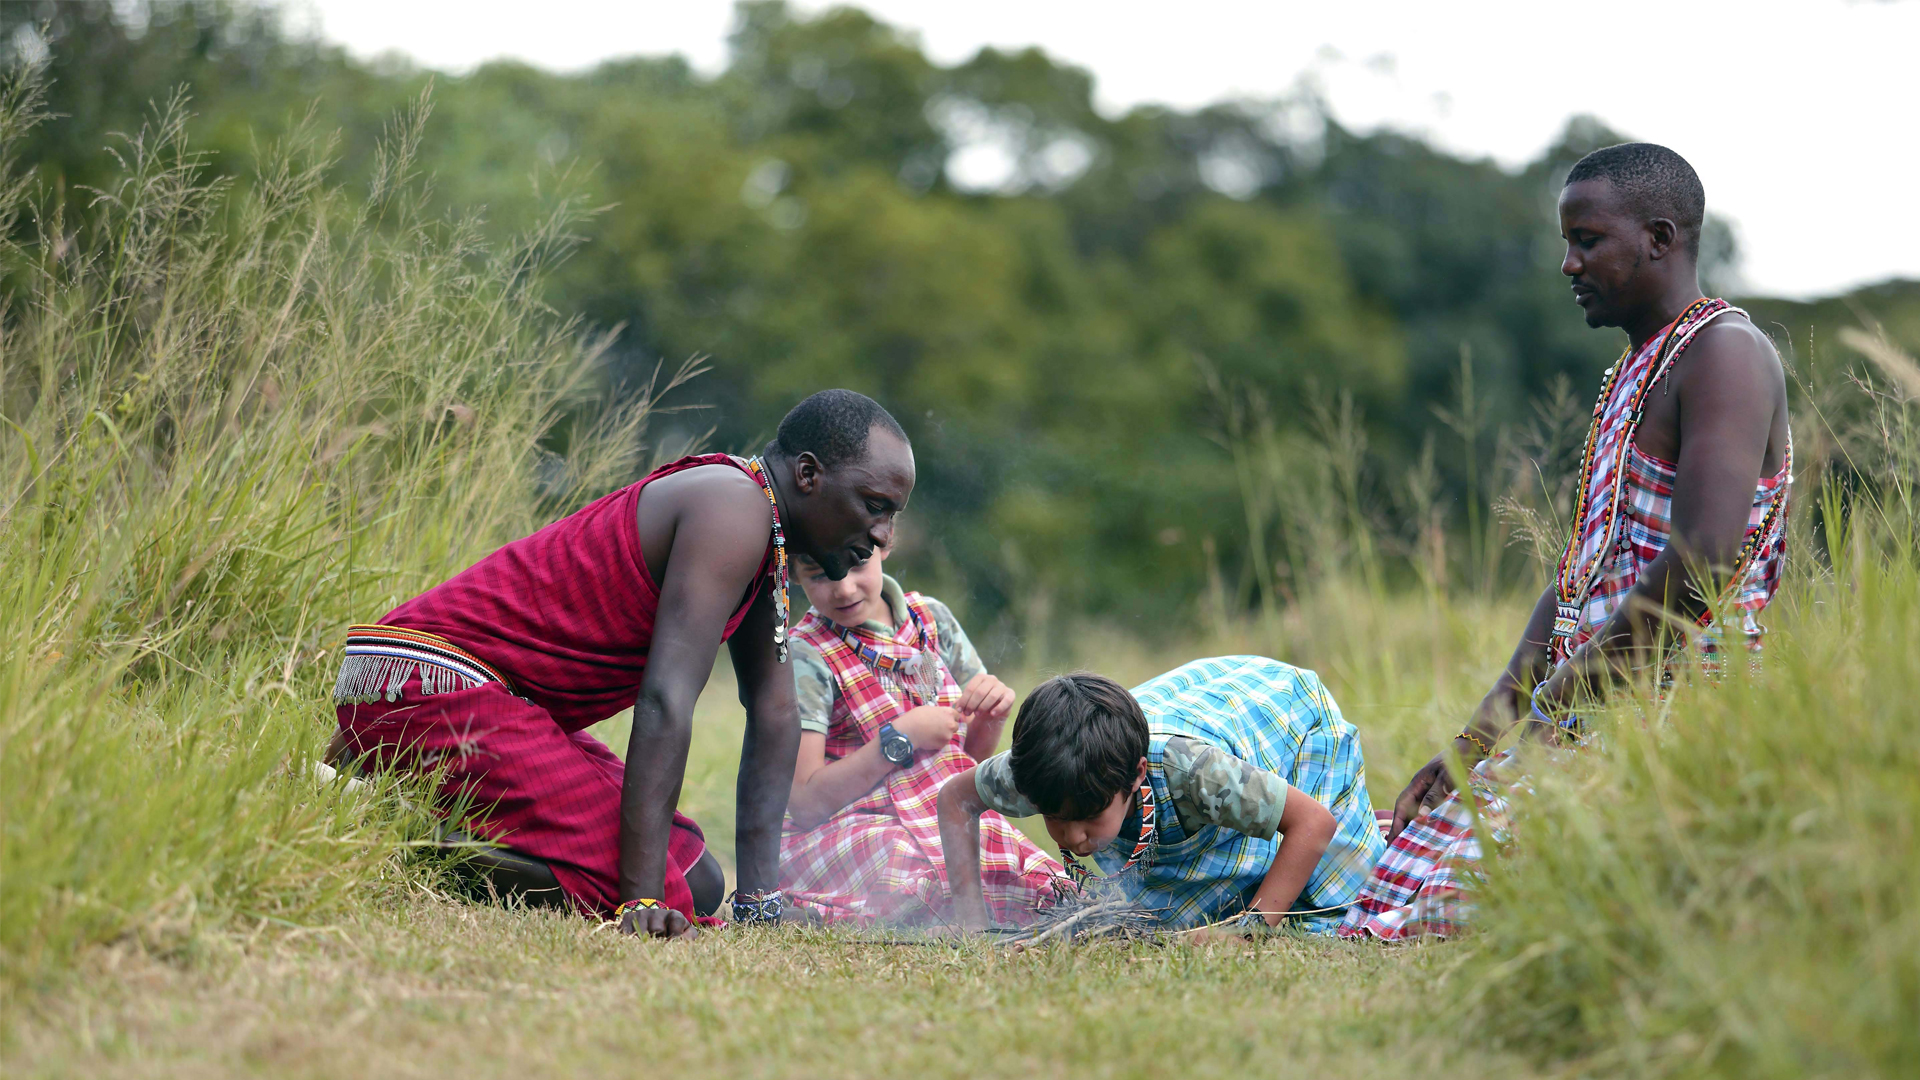 All About Safaris Family Safaris kicheche mara maasai and kids